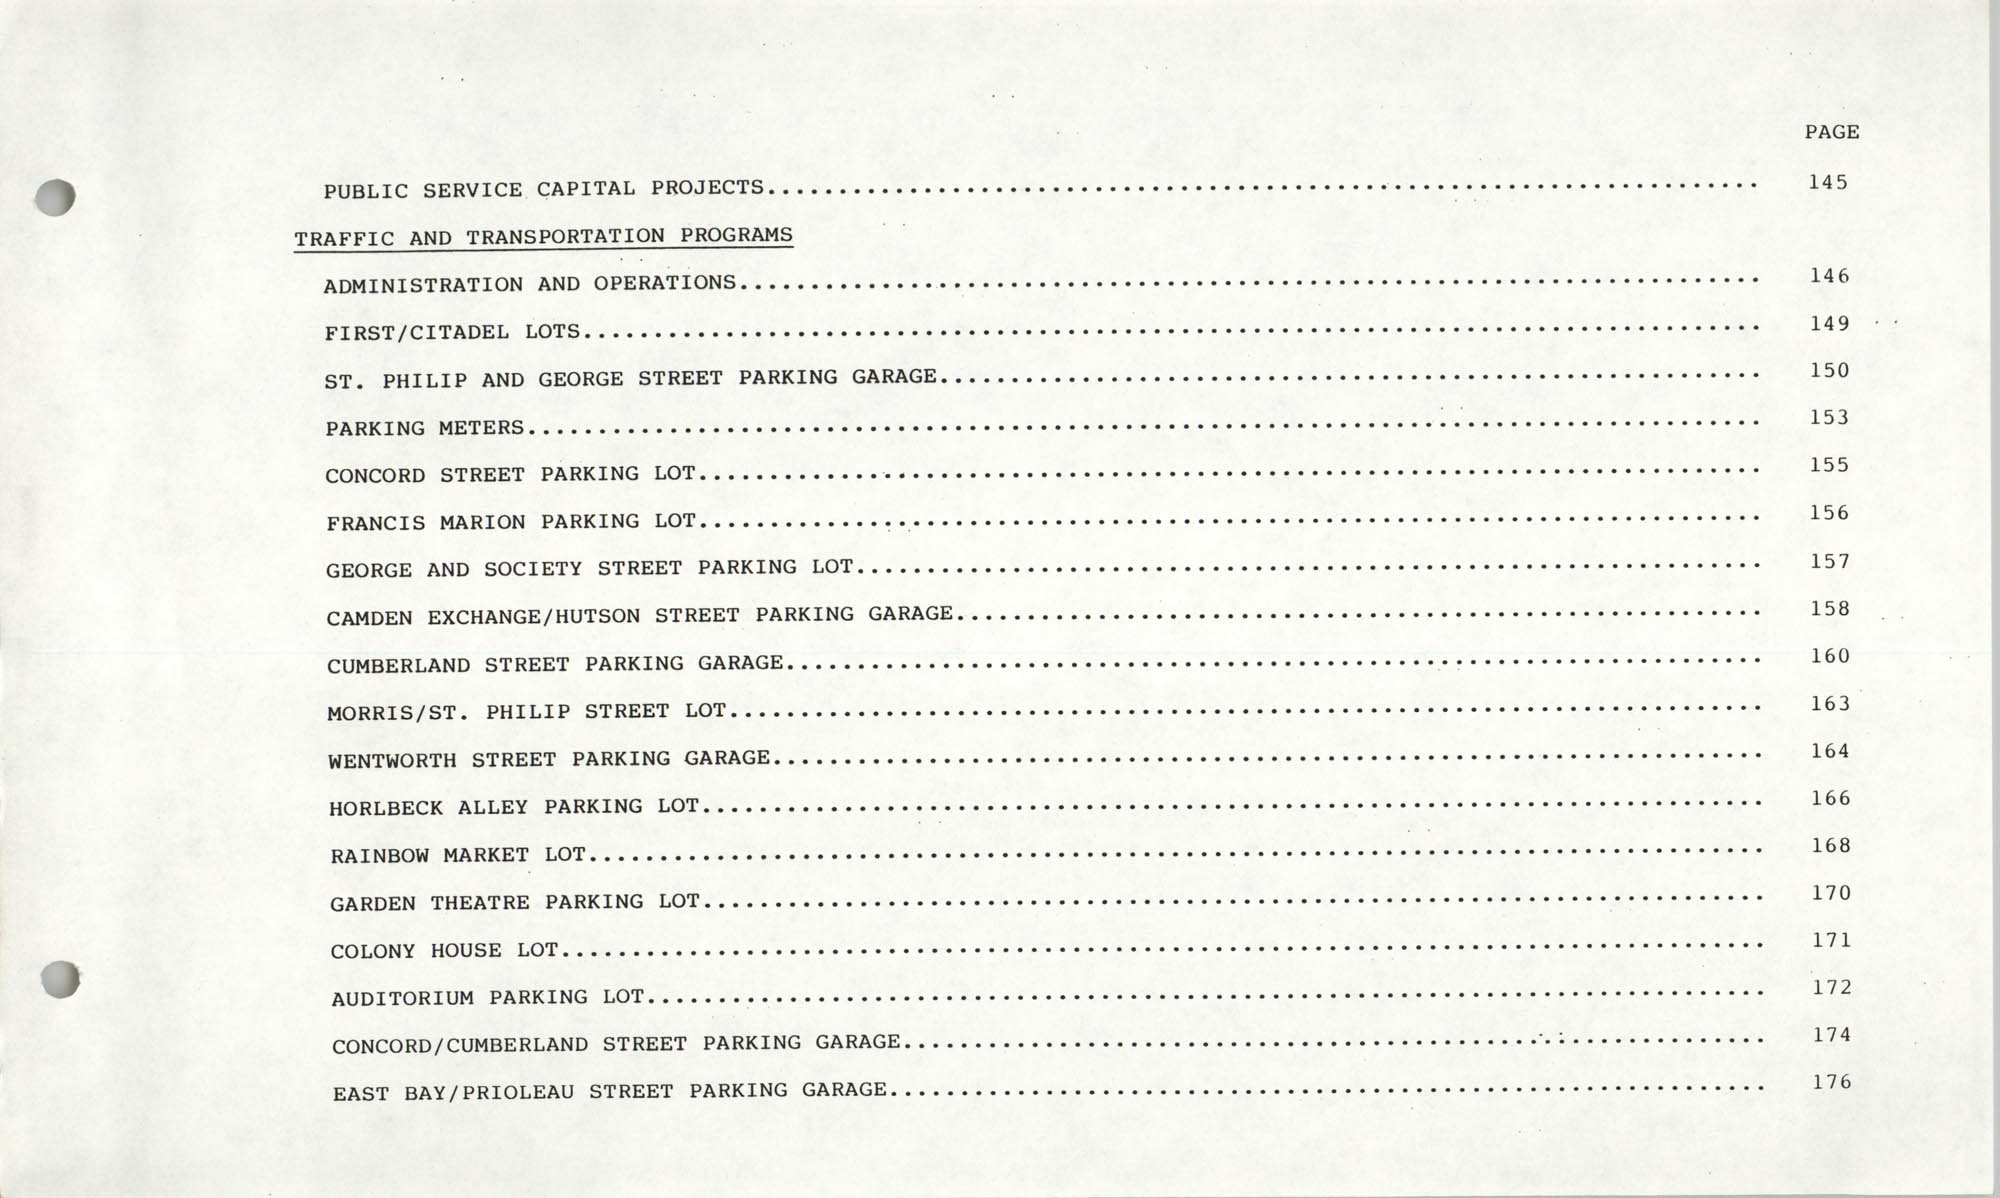 The City Council of Charleston, South Carolina, 1993 Budget, Table of Contents Page 4